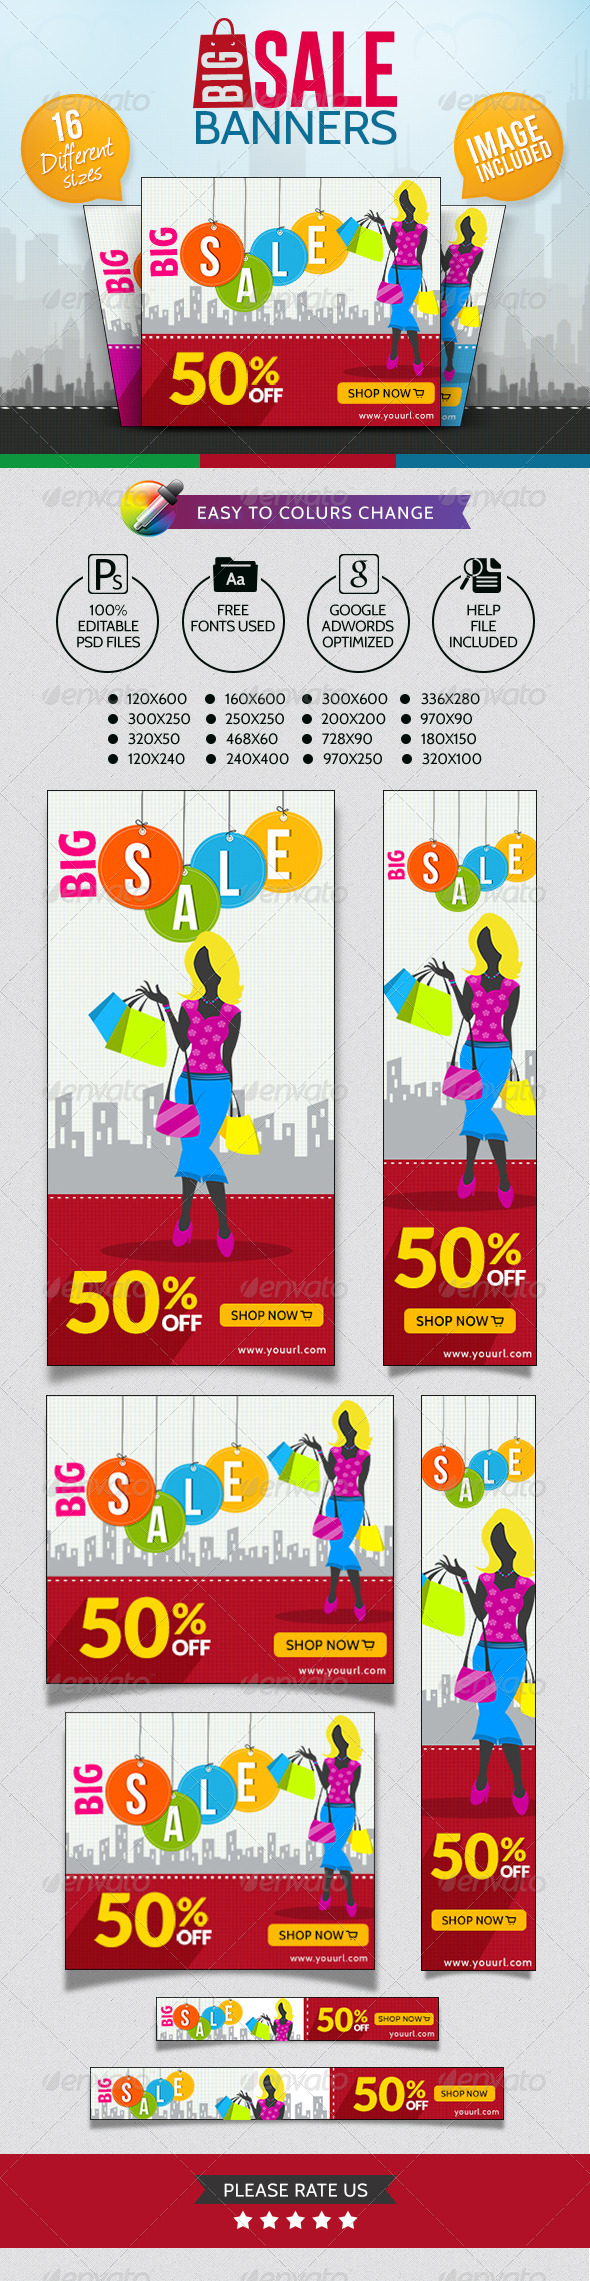 GraphicRiver Big Sale Banners 7241171